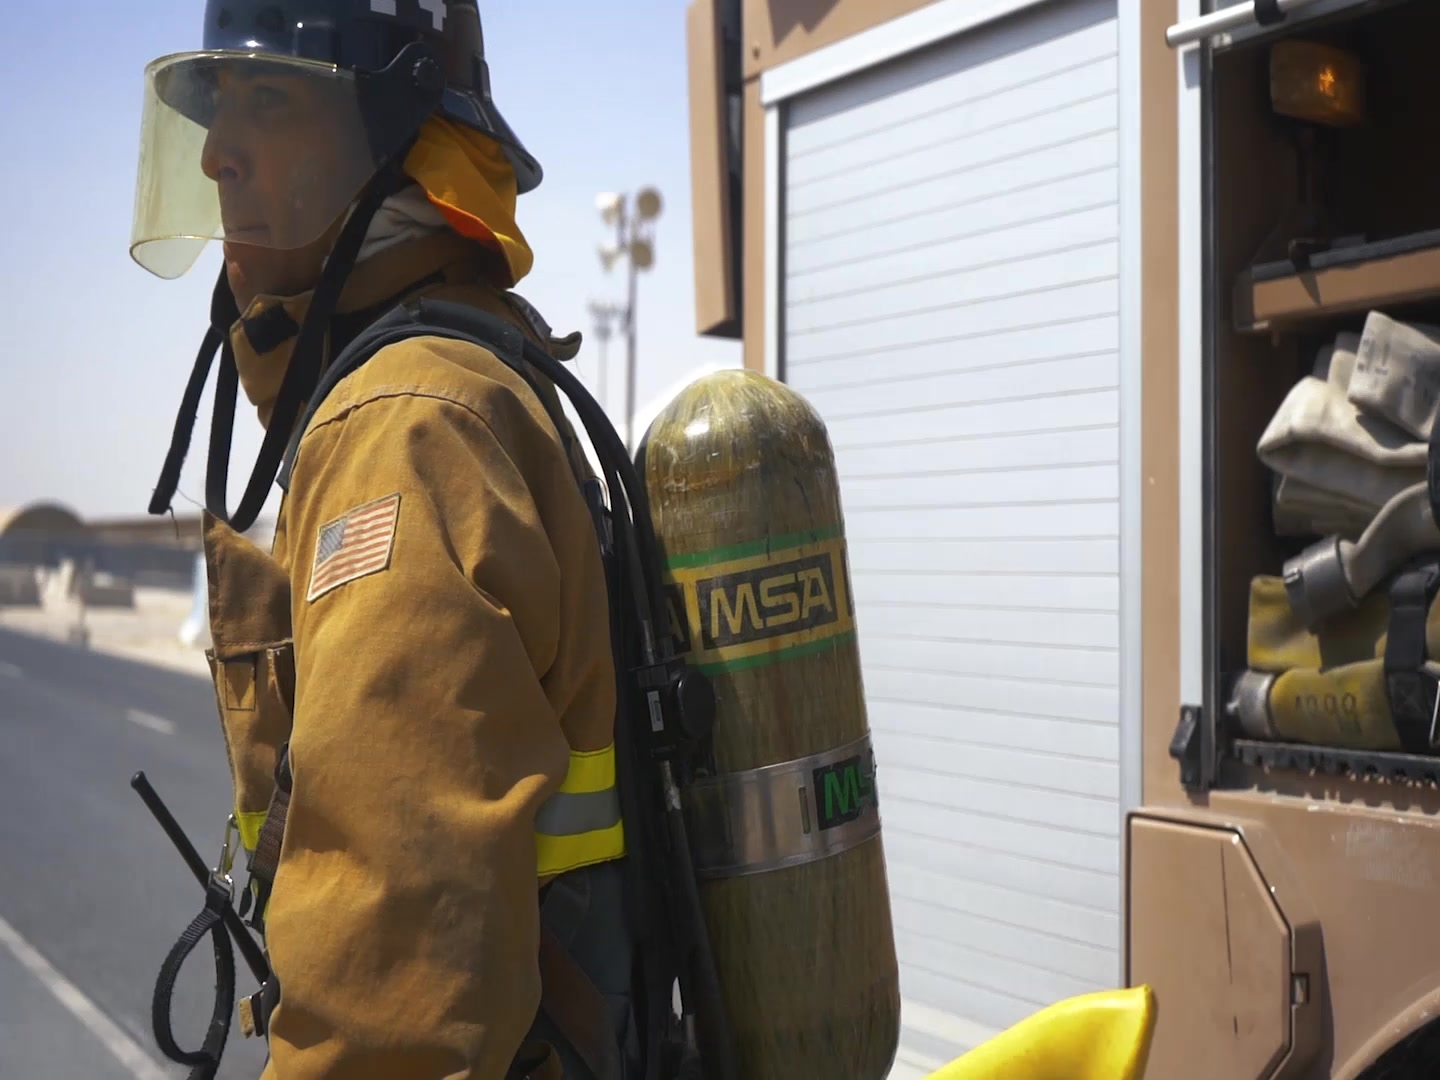 Firefighters conduct training to stay proficient in primary duties at Al Udeid Air Base, Qatar, July 10, 2020.